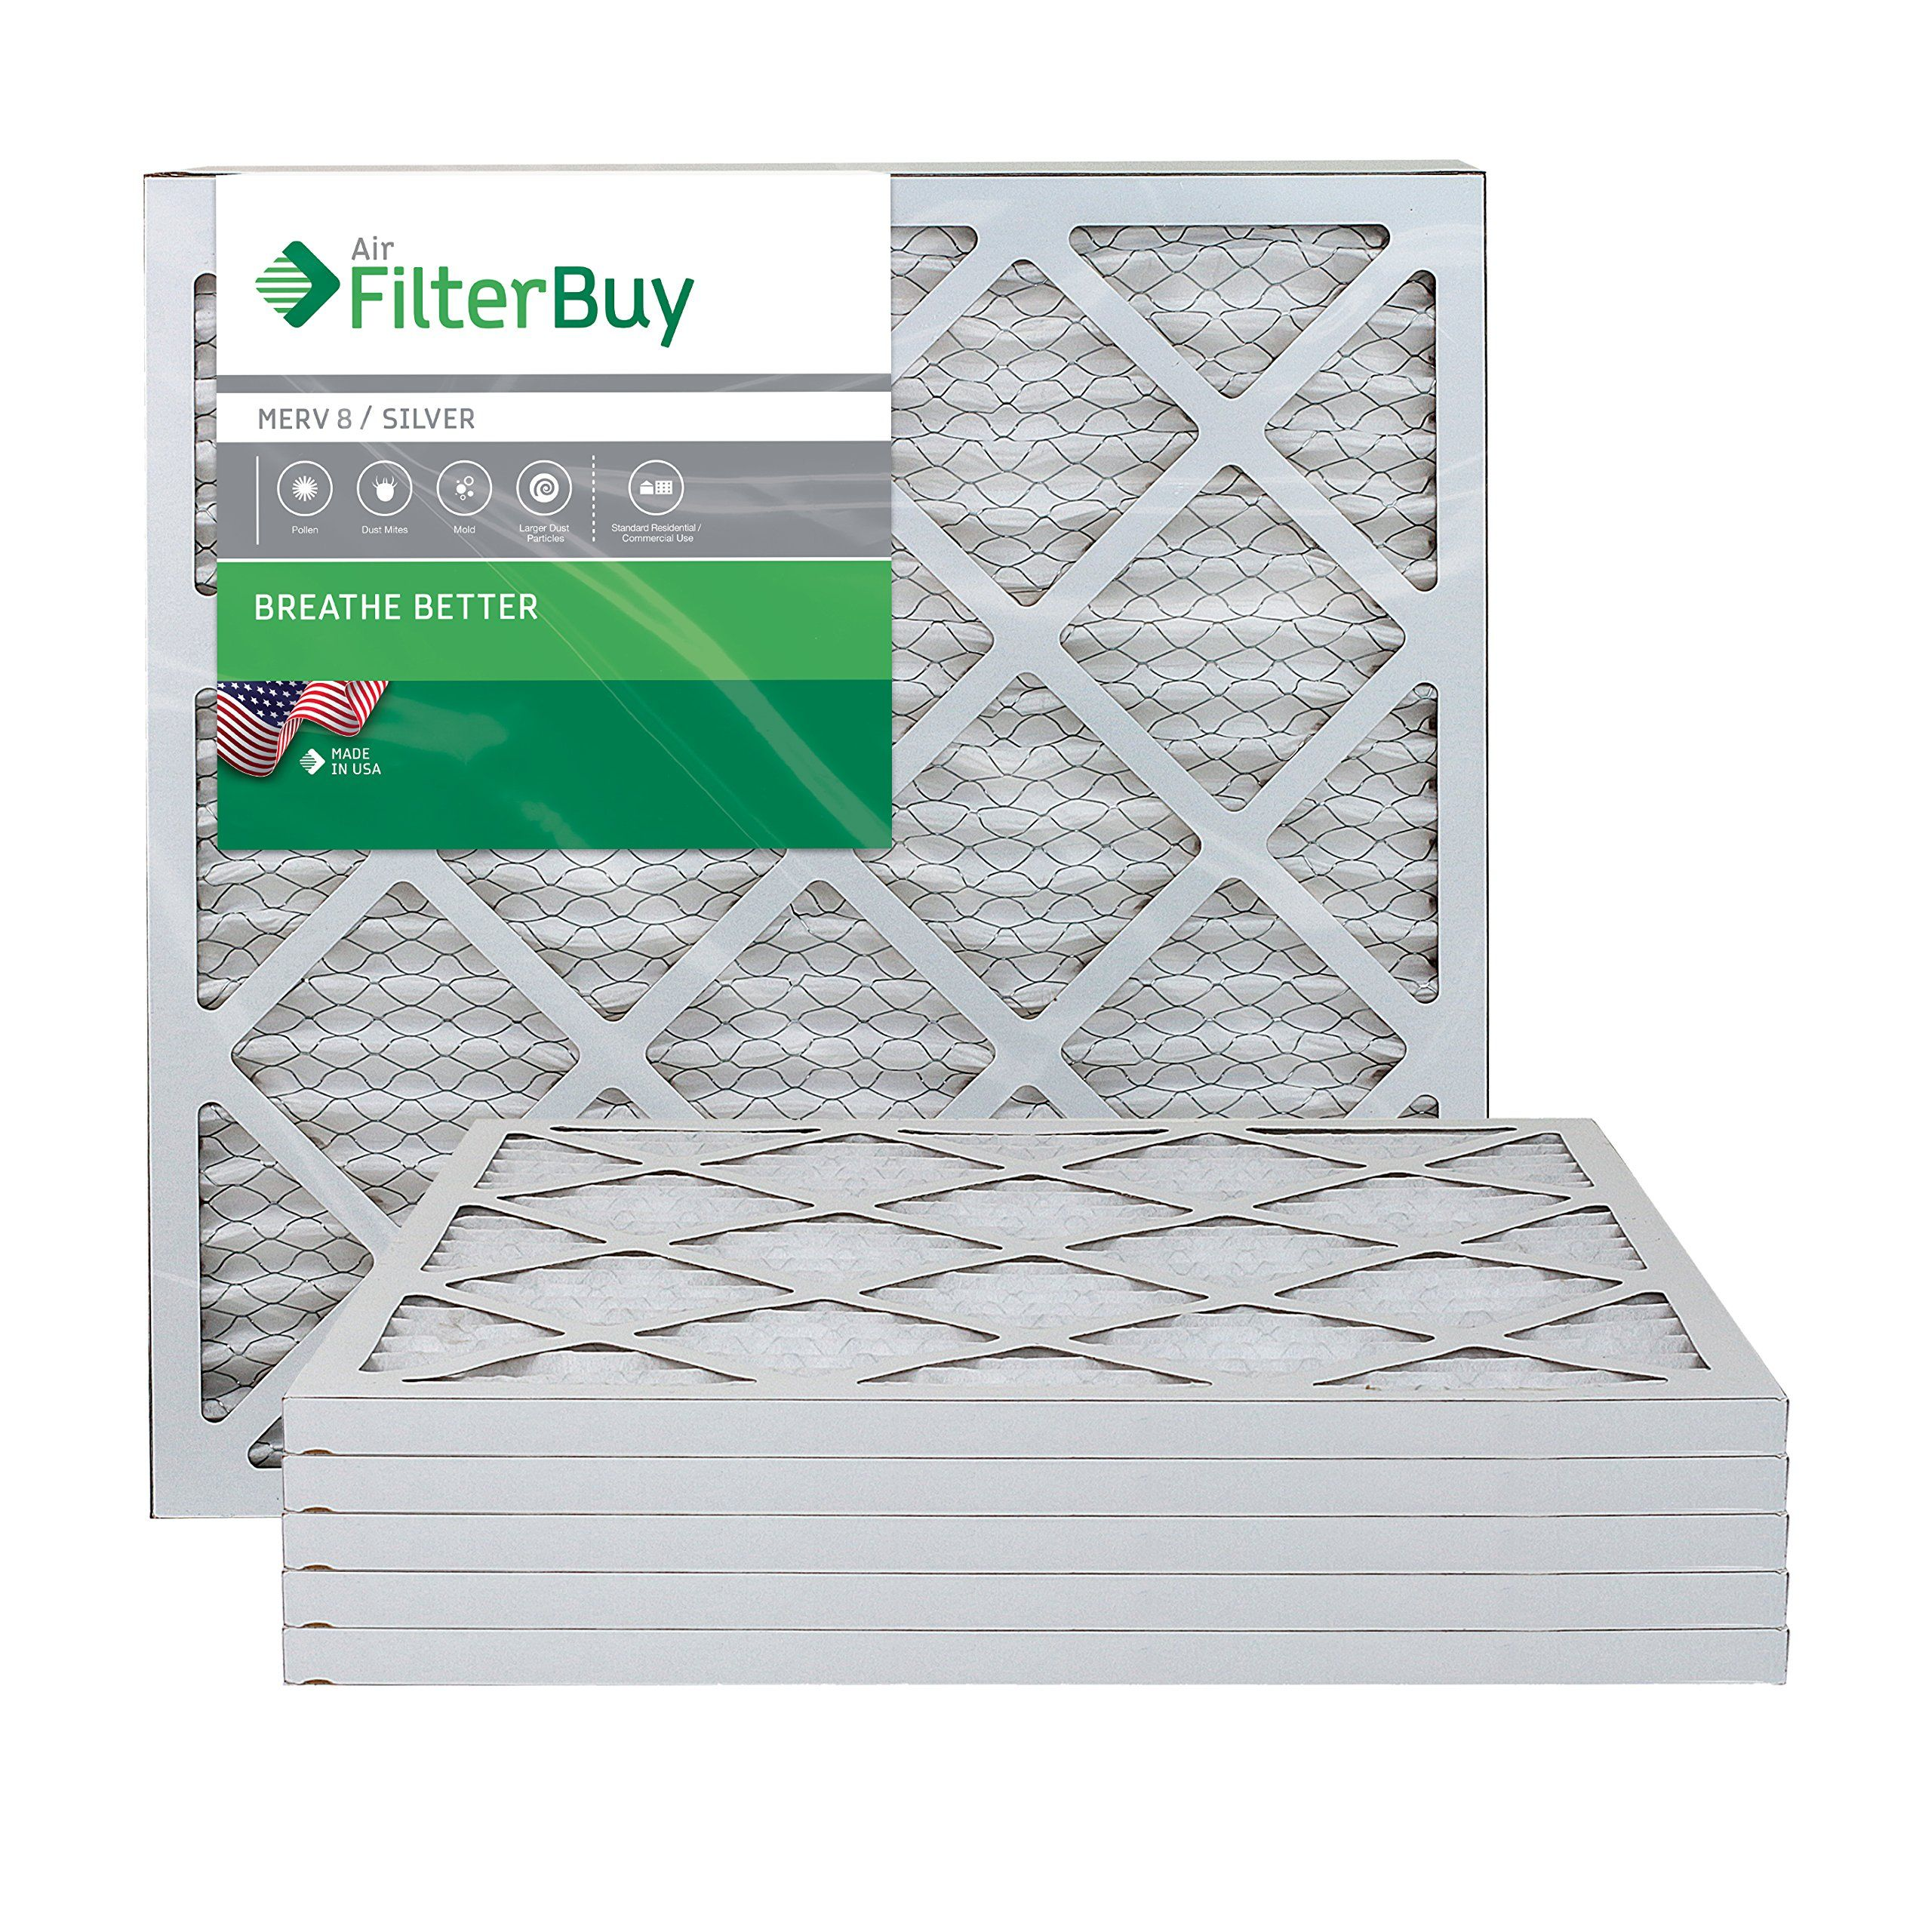 FilterBuy 20x22x1 MERV 8 Pleated AC Furnace Air Filter